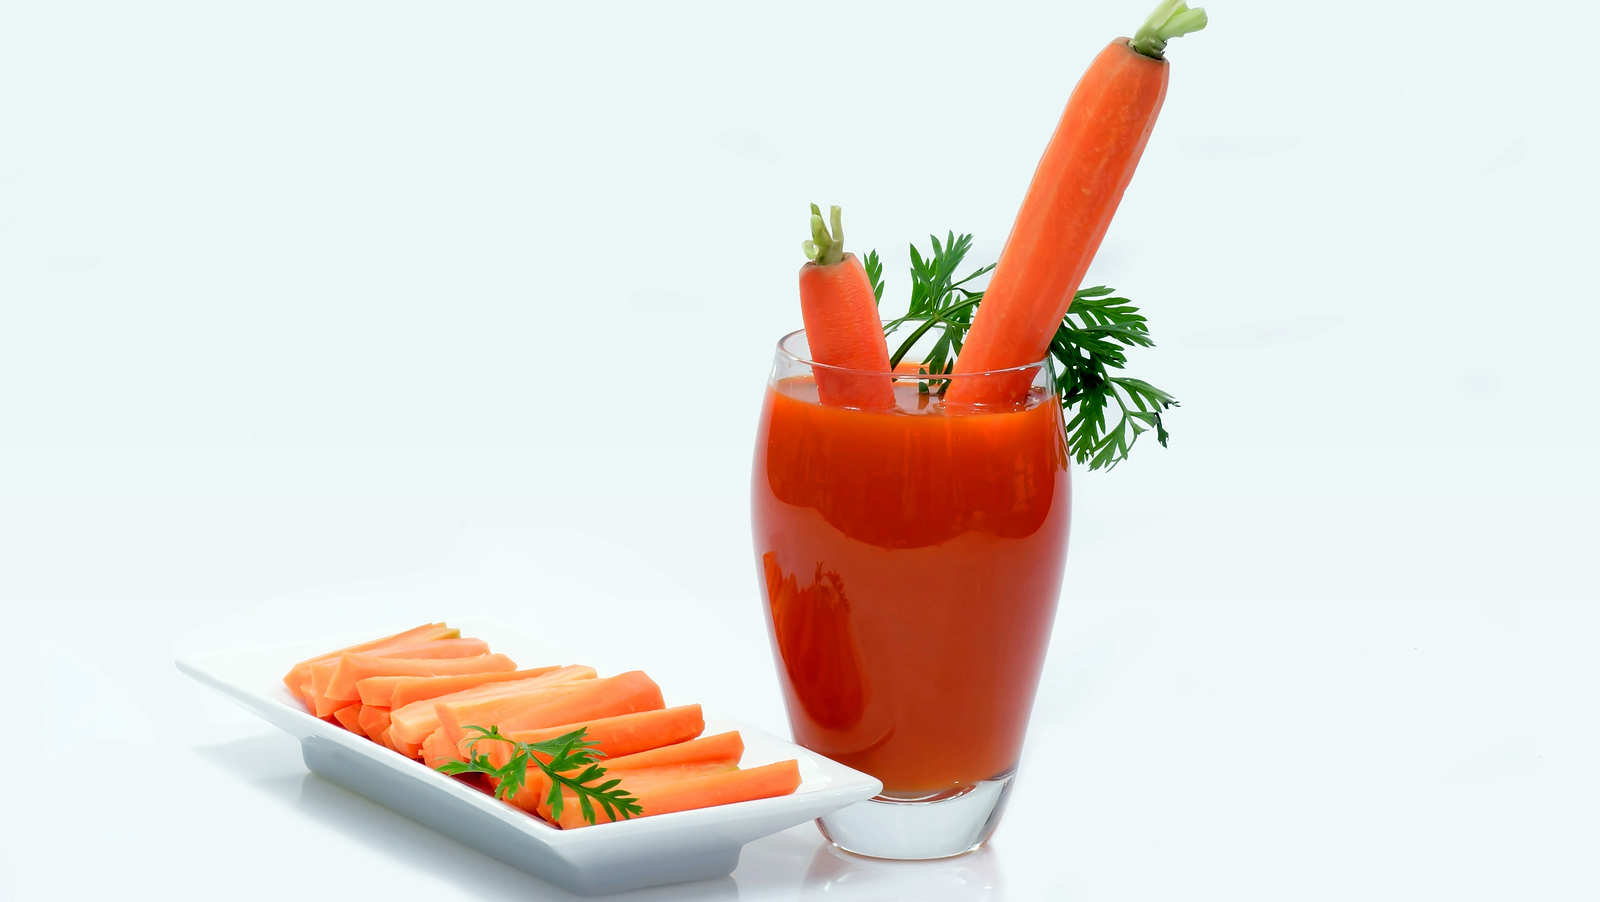 Carrots - Health Benefits And Nutrition Facts